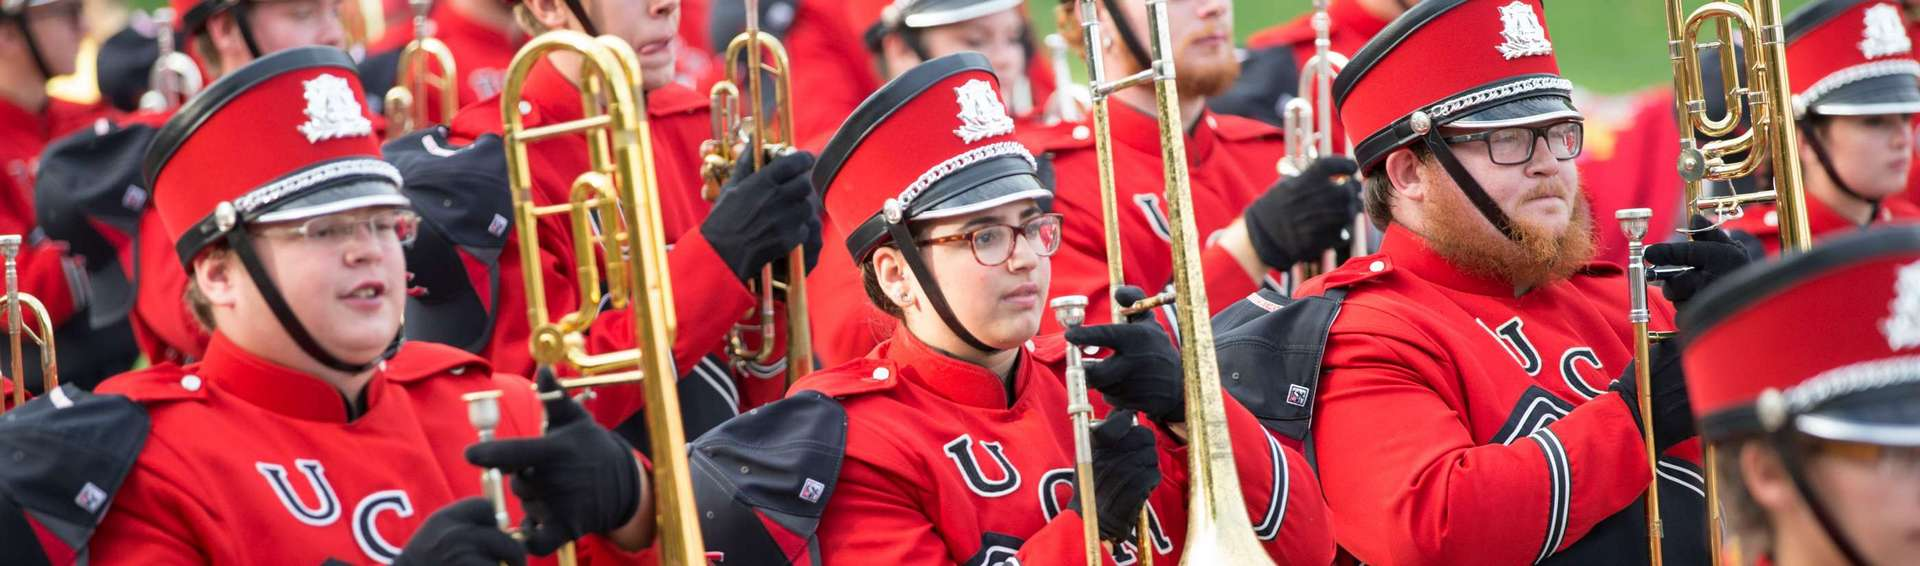 UCM Marching Mules at Homecoming Parade